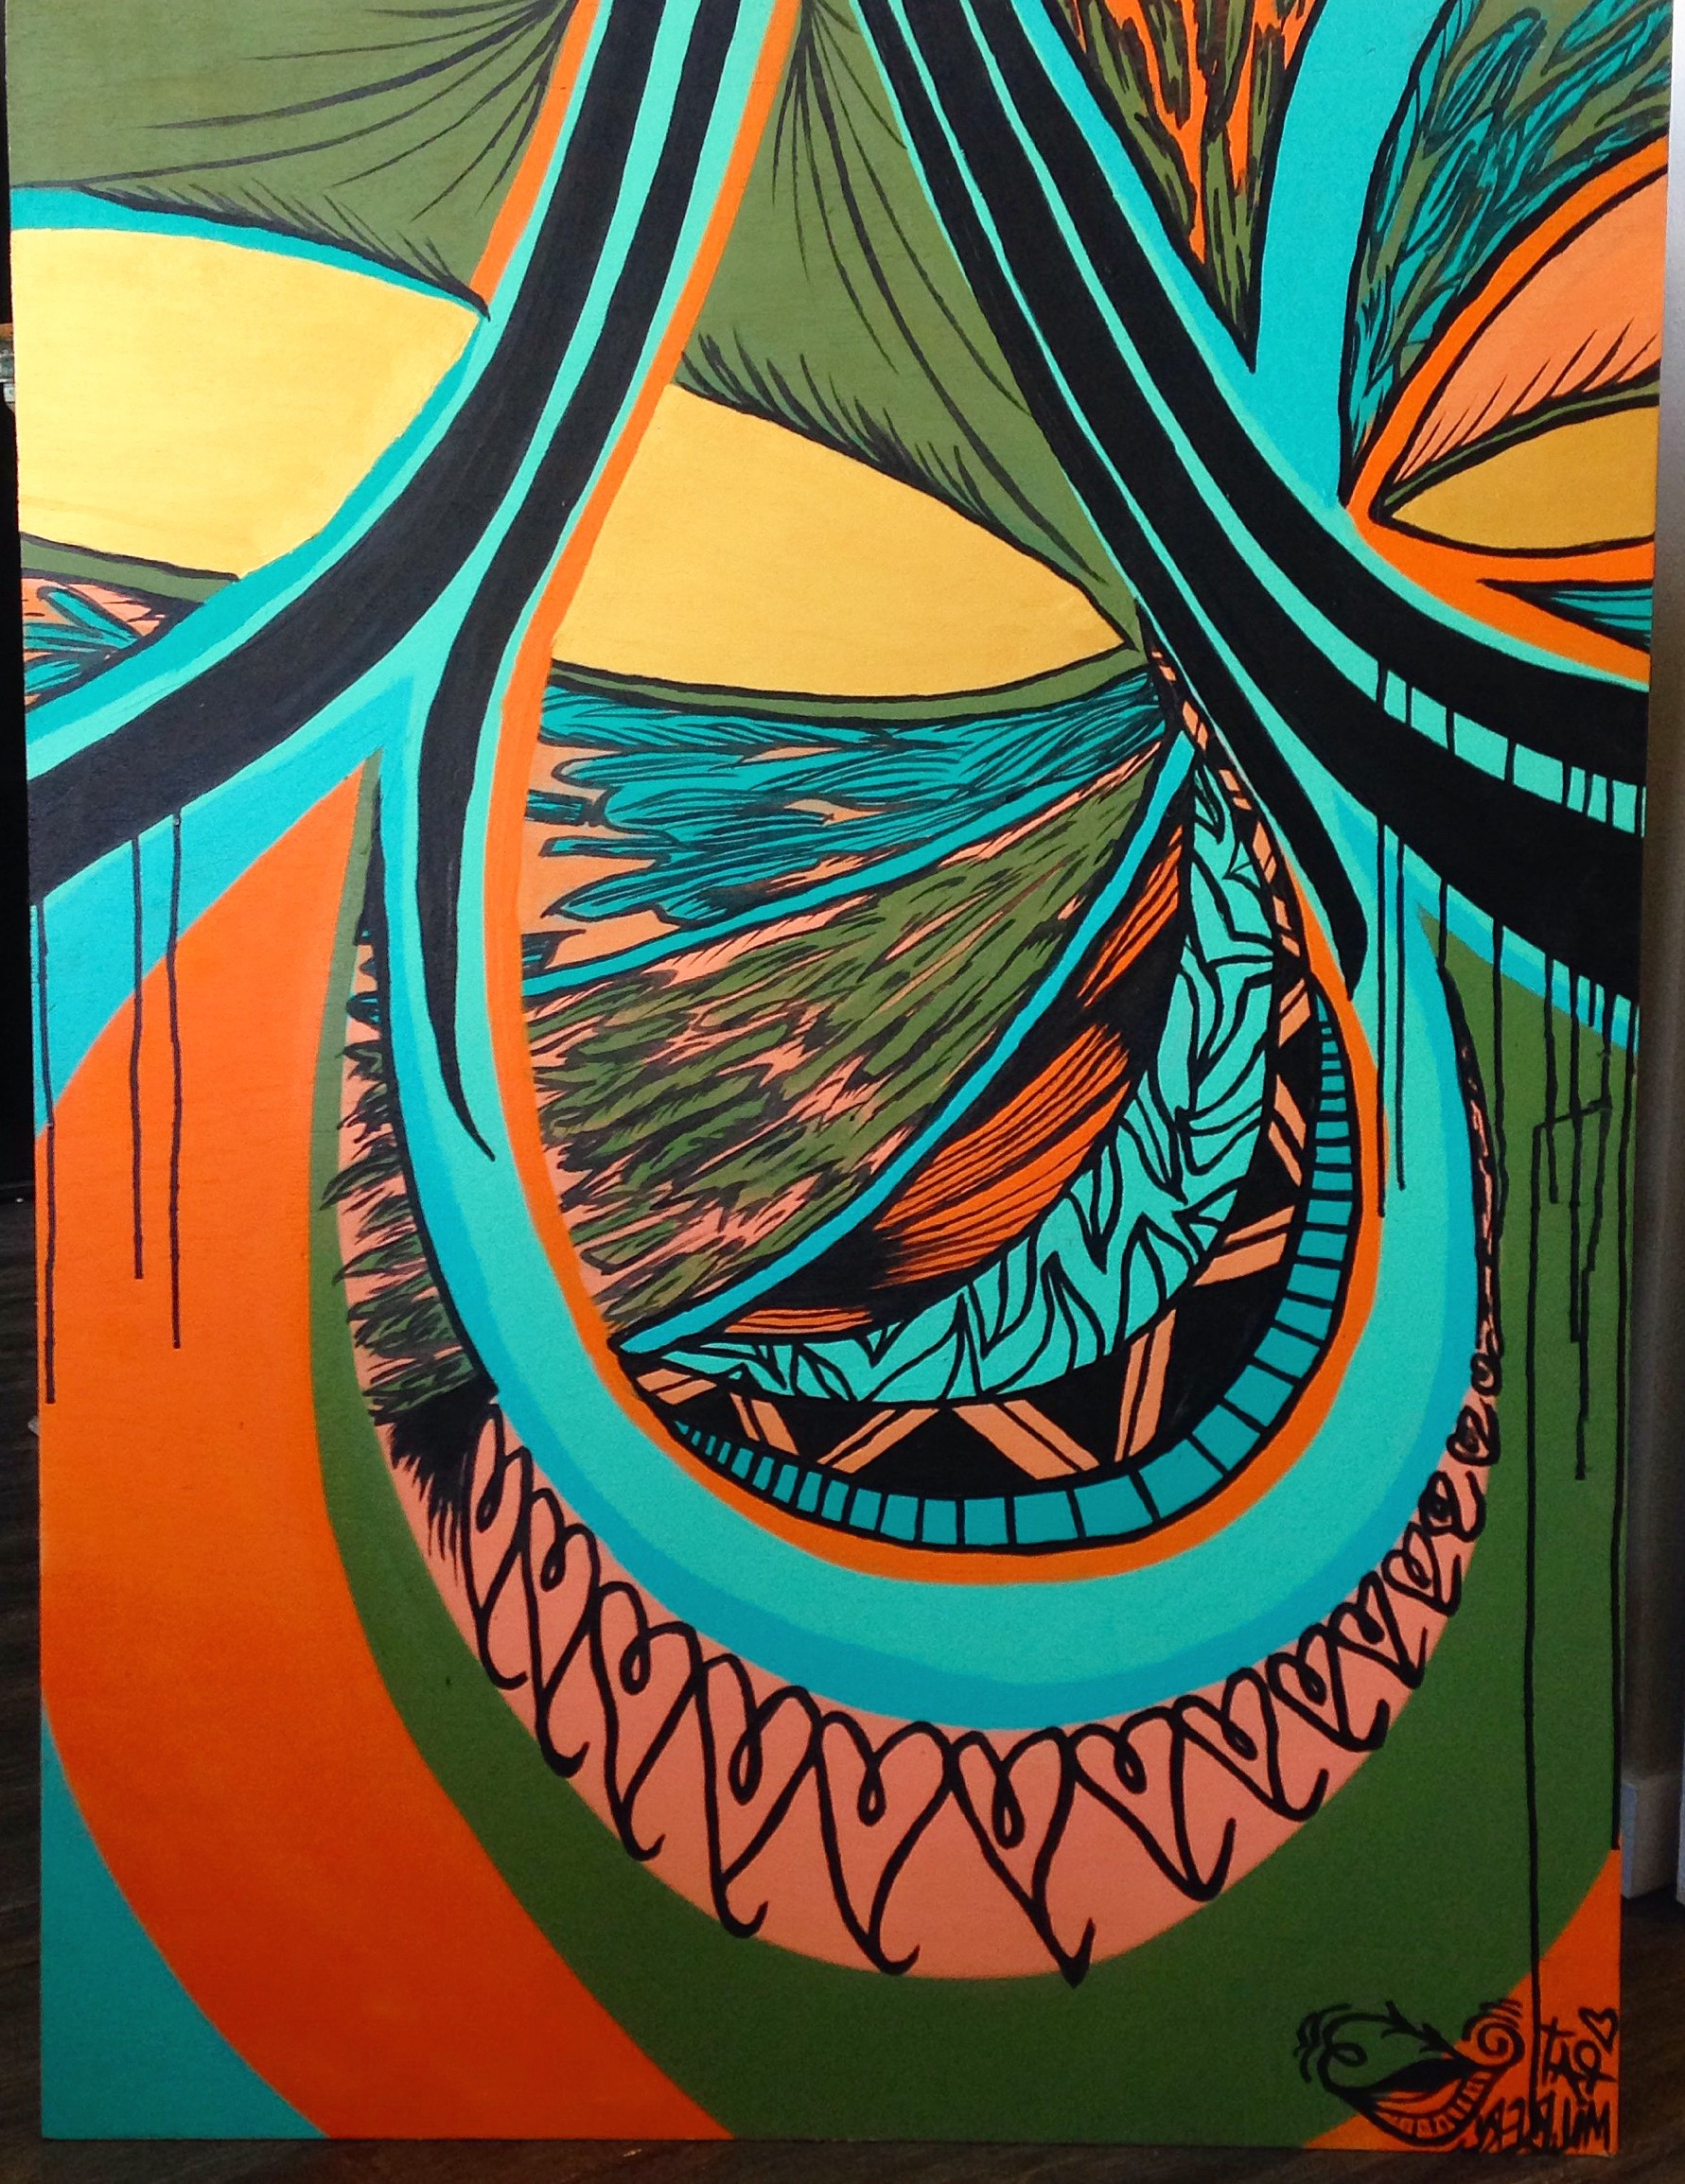 Pat Milbery Art_ feel good flow of pattern example of colors_ applicable for ramp art or surrpounding wall art .JPG